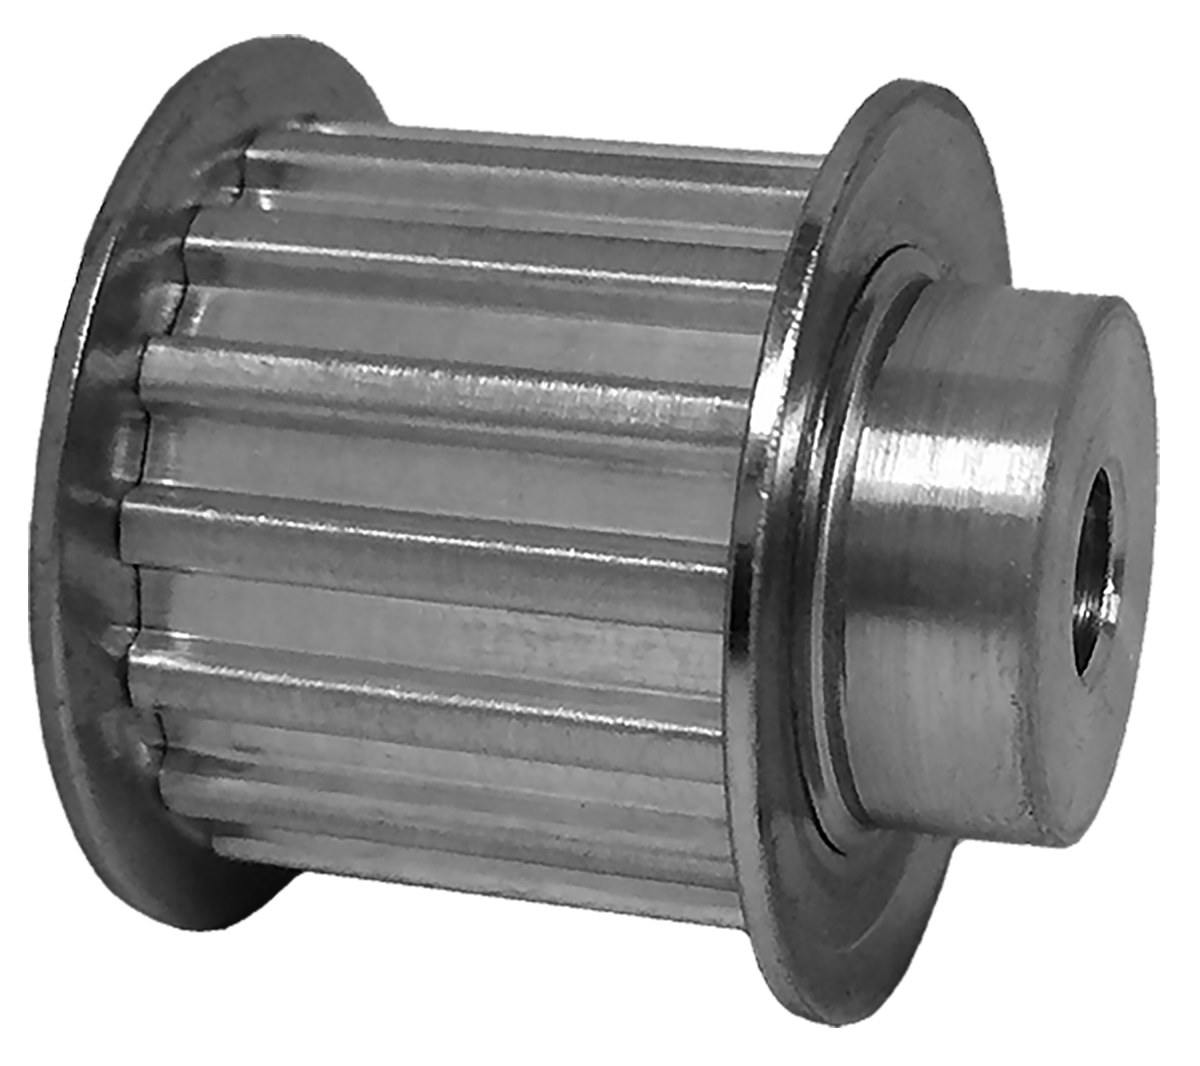 27T5/15-2 - Aluminum Metric Pulleys